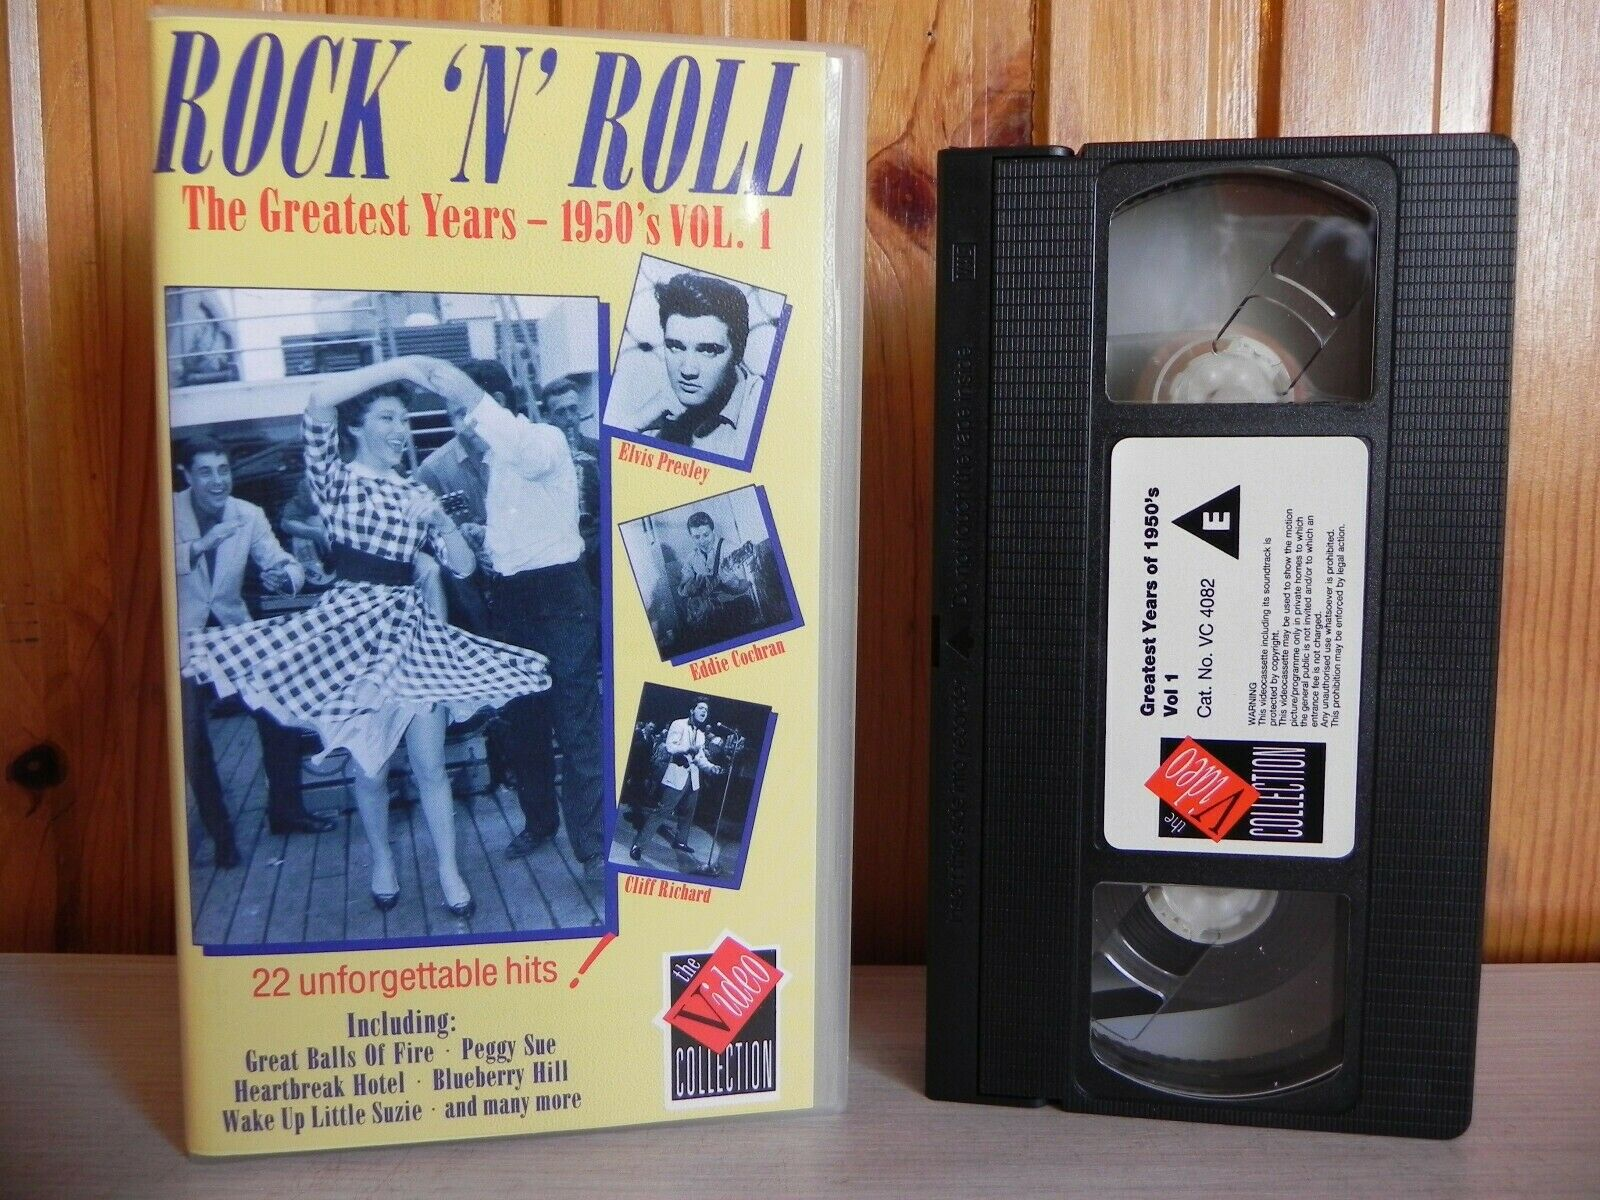 Rock 'N' Roll - The Greatest Years - 1950's Vol. 1 - 22 Unforgettable Hits - VHS